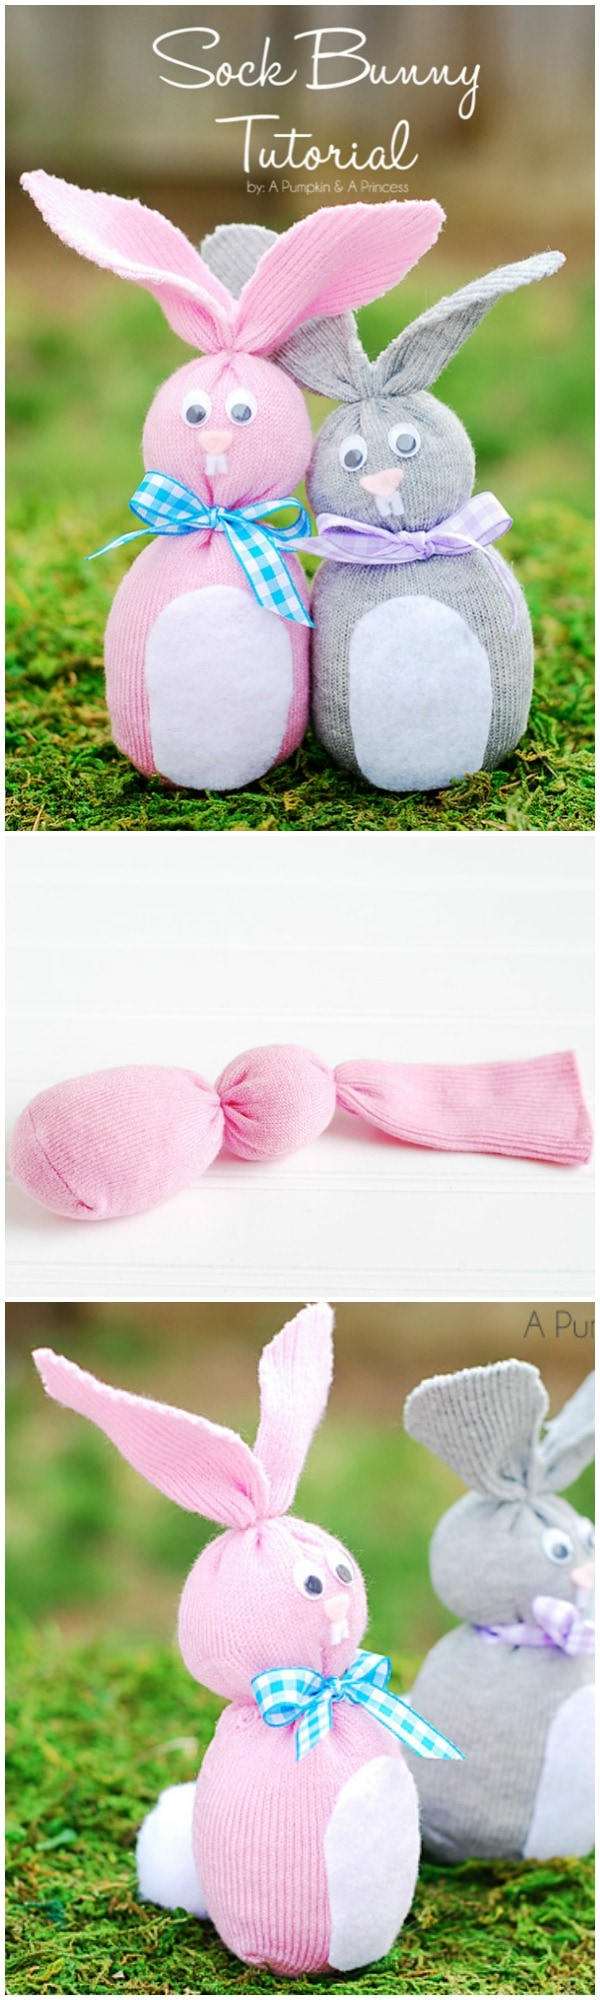 Let the kids join you in making these simple sock bunny softies. Lots of other great bunny crafts here, too.